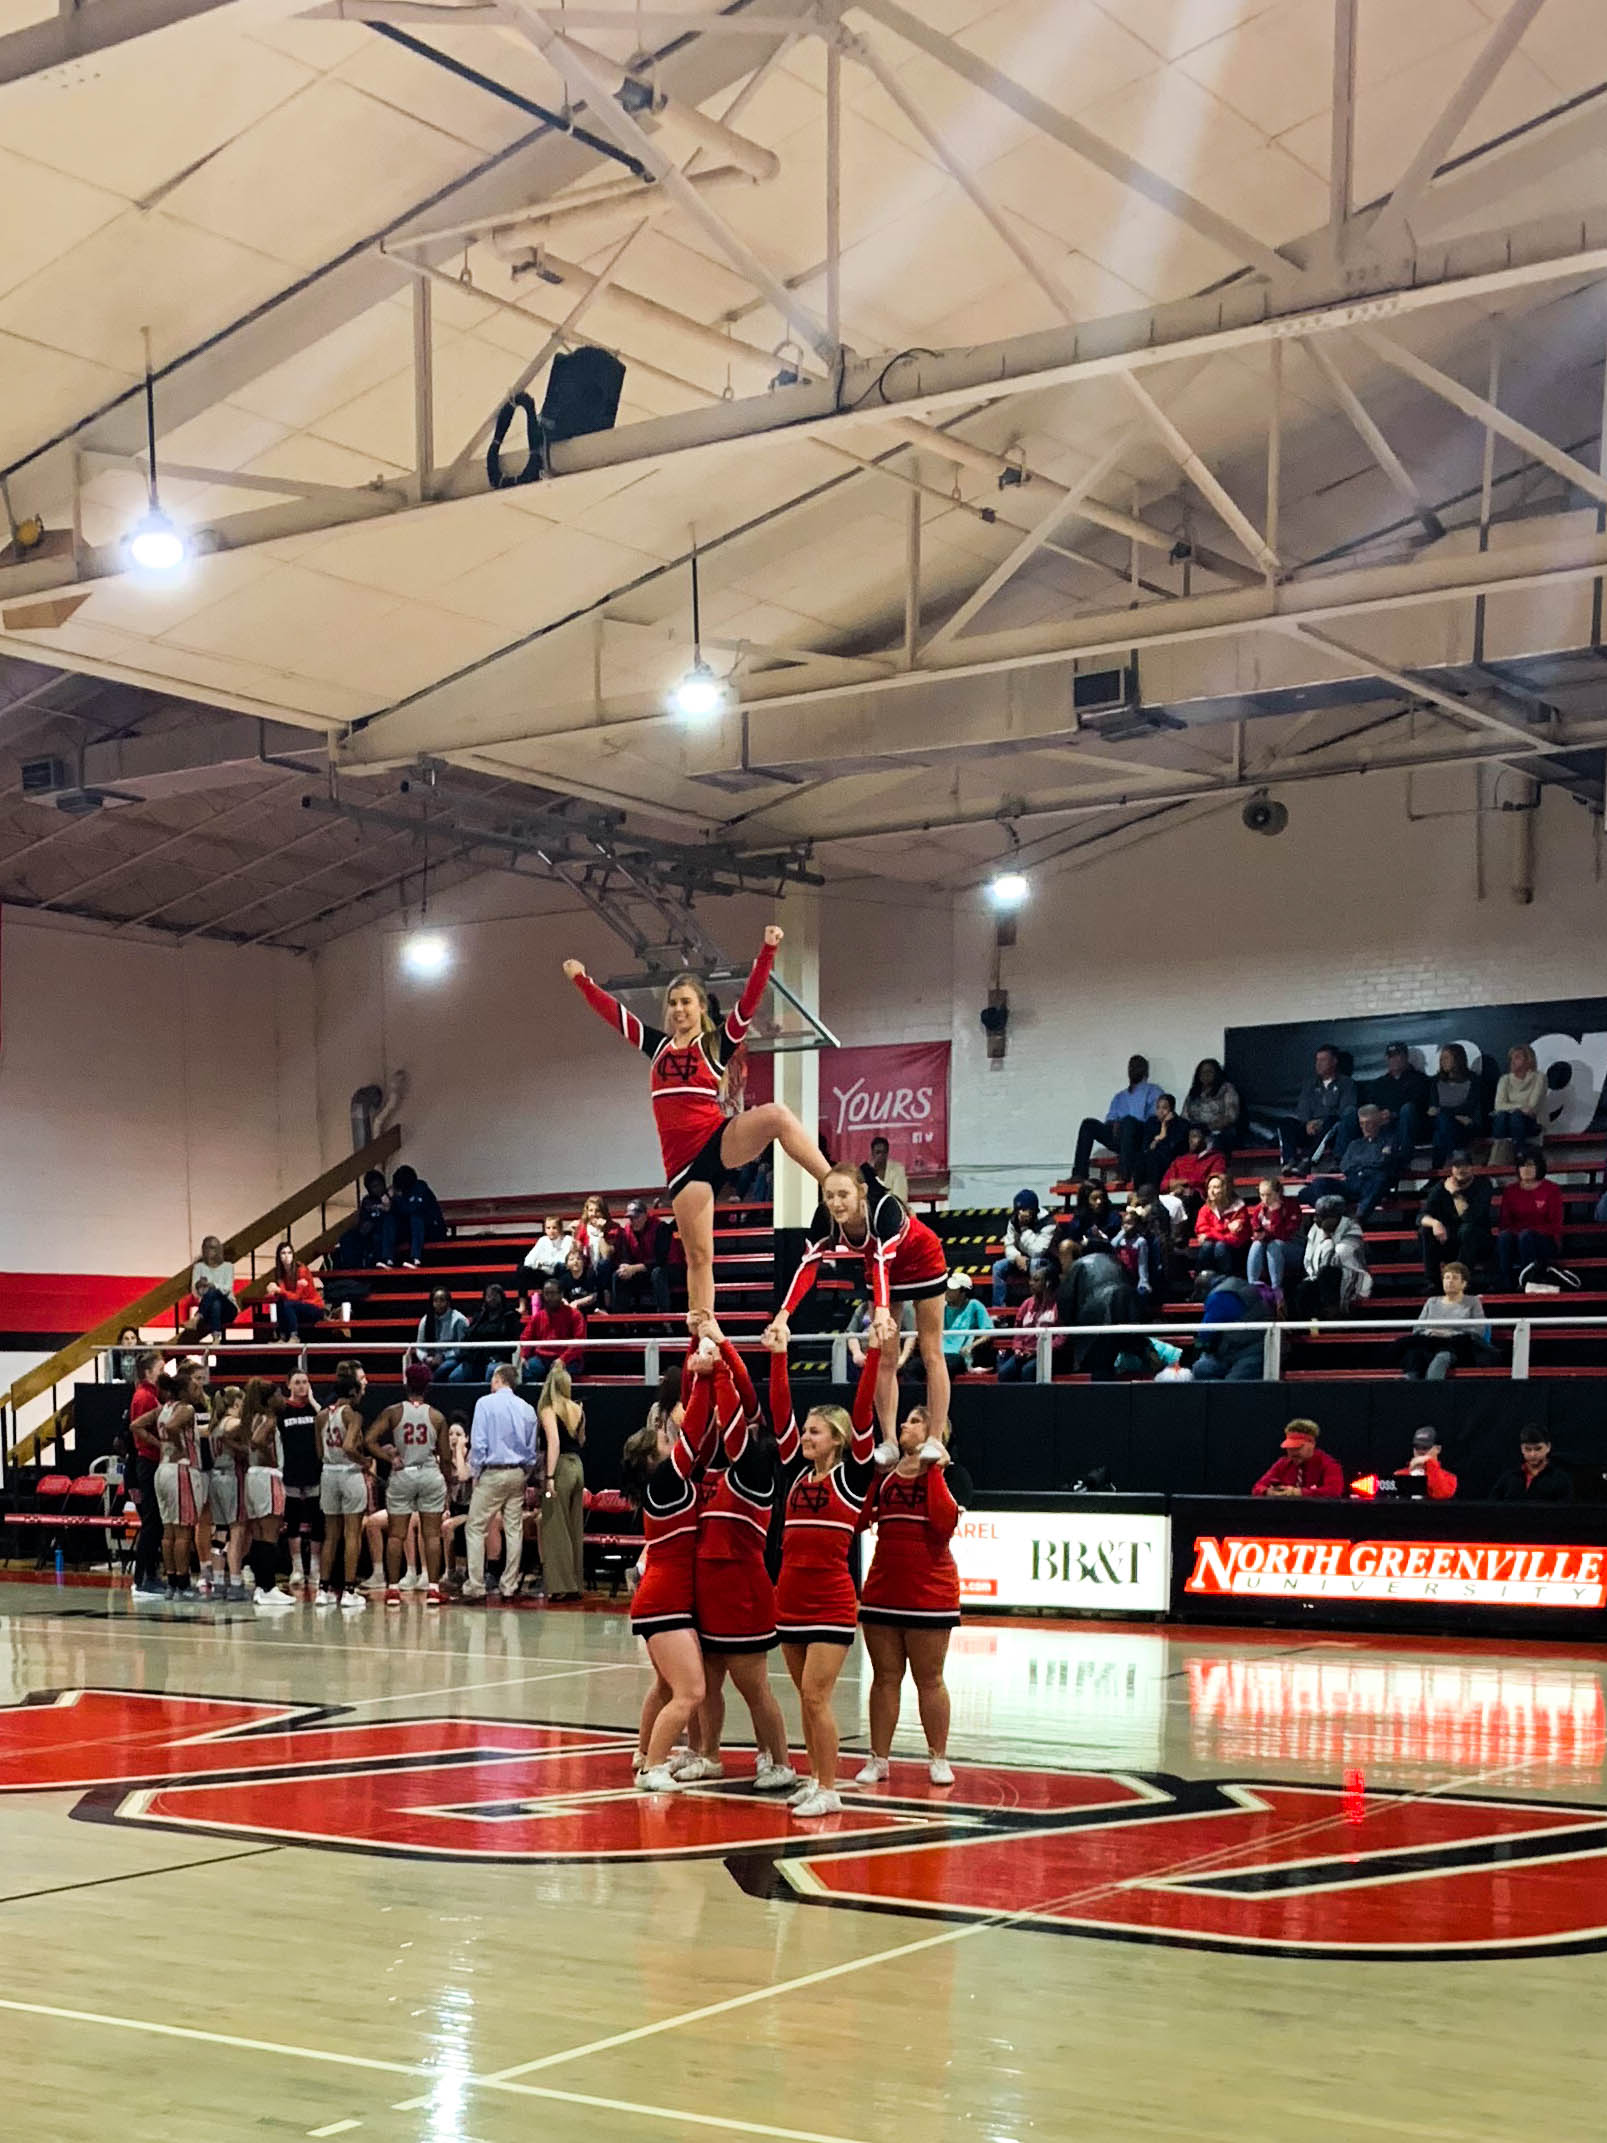 After the first quarter, the NGU cheerleaders perform a stunt at half court.